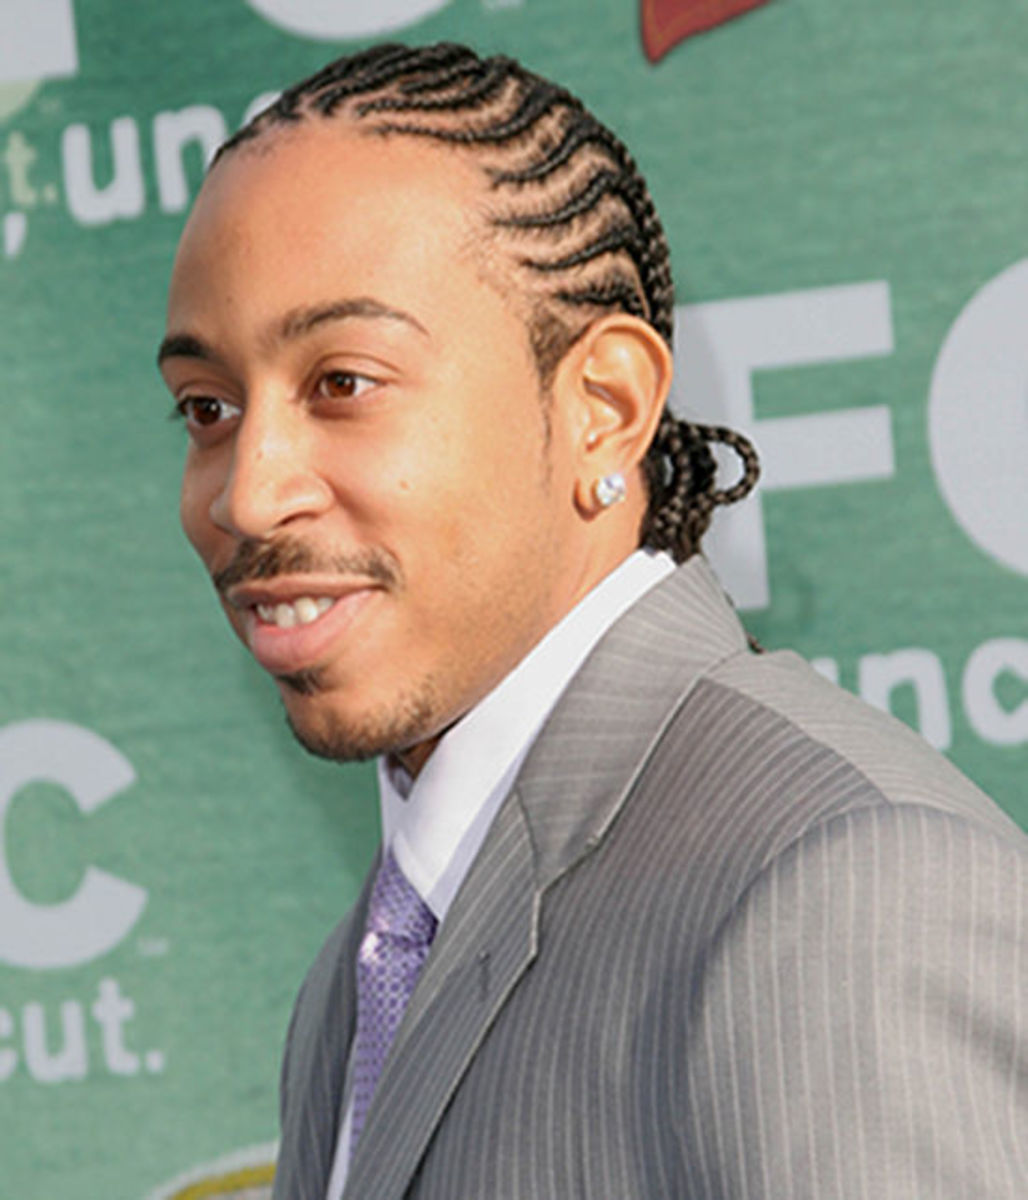 Ludacris cornrows hairstyle.